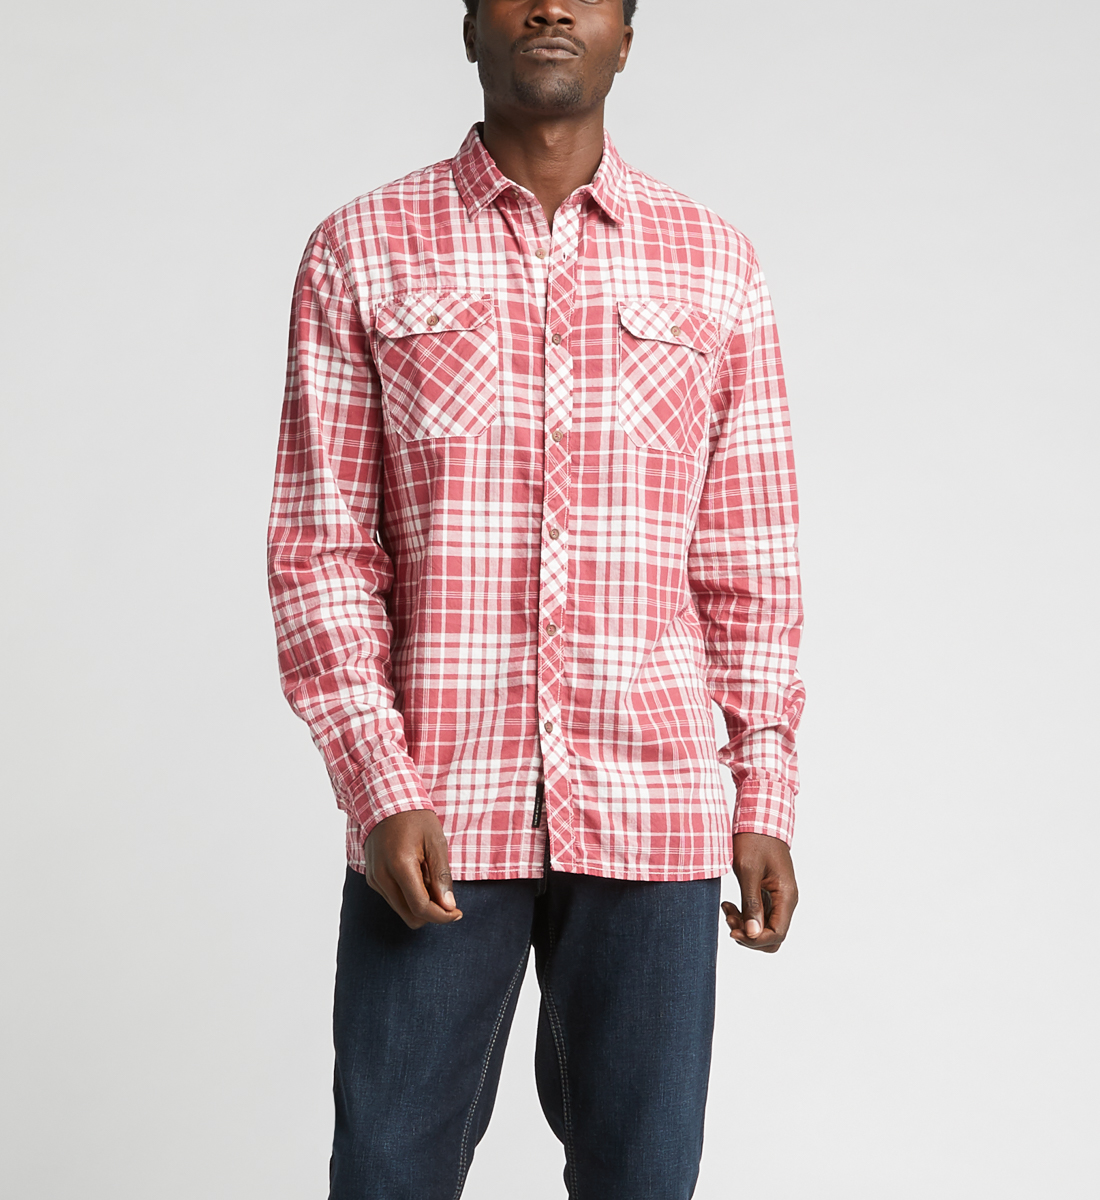 Charly Long-Sleeve Plaid Button-Down Shirt,Red Front